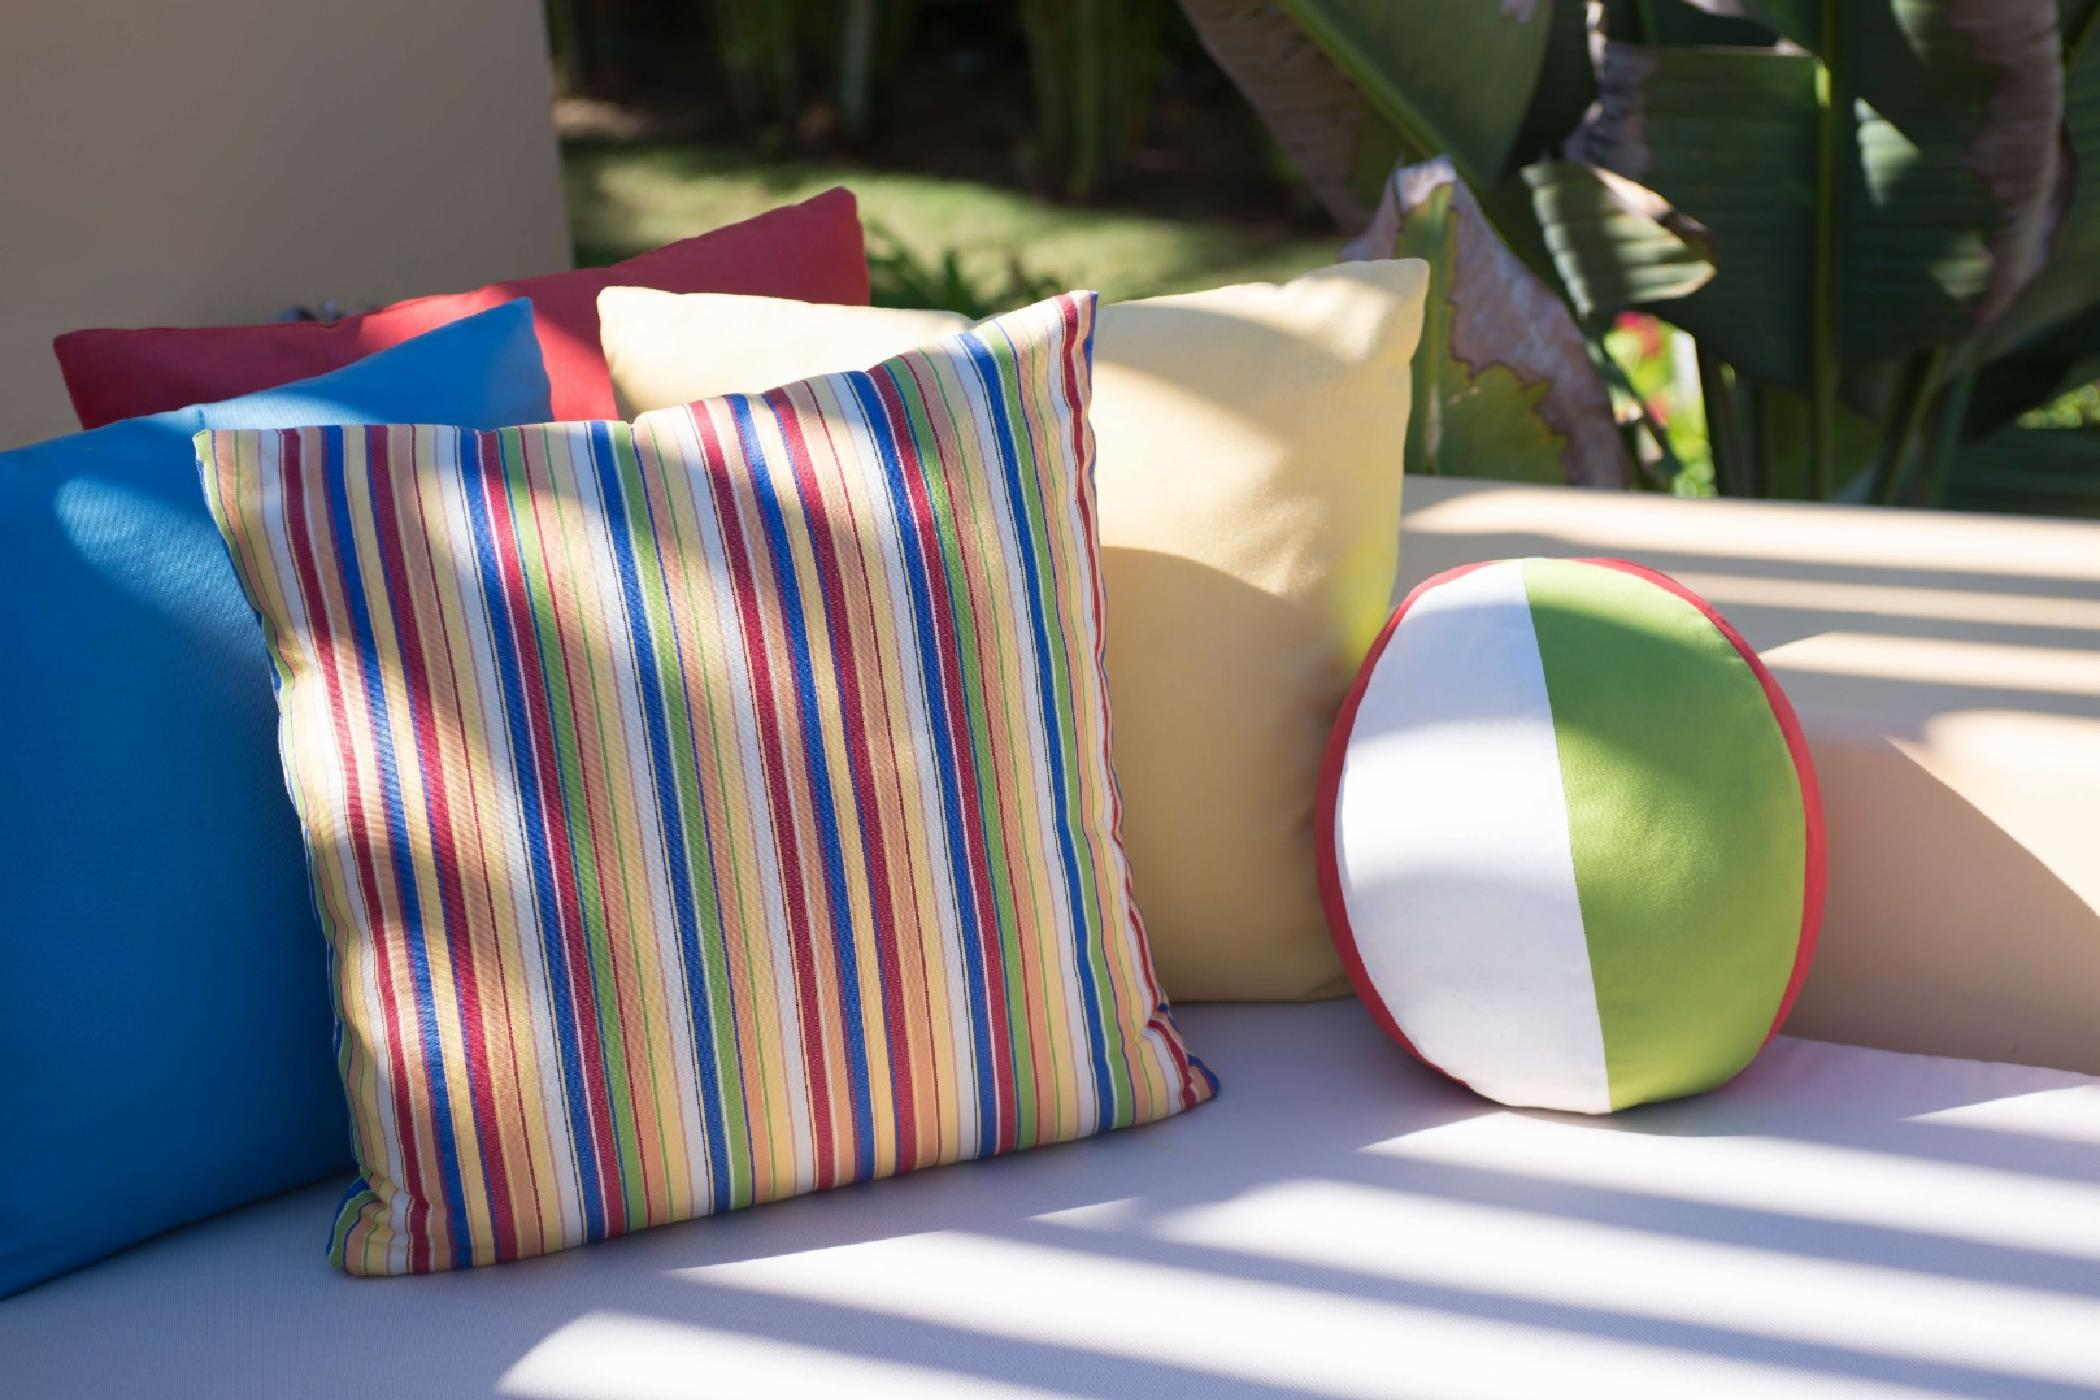 Colorful fabrics and comfortable seating areas abound.